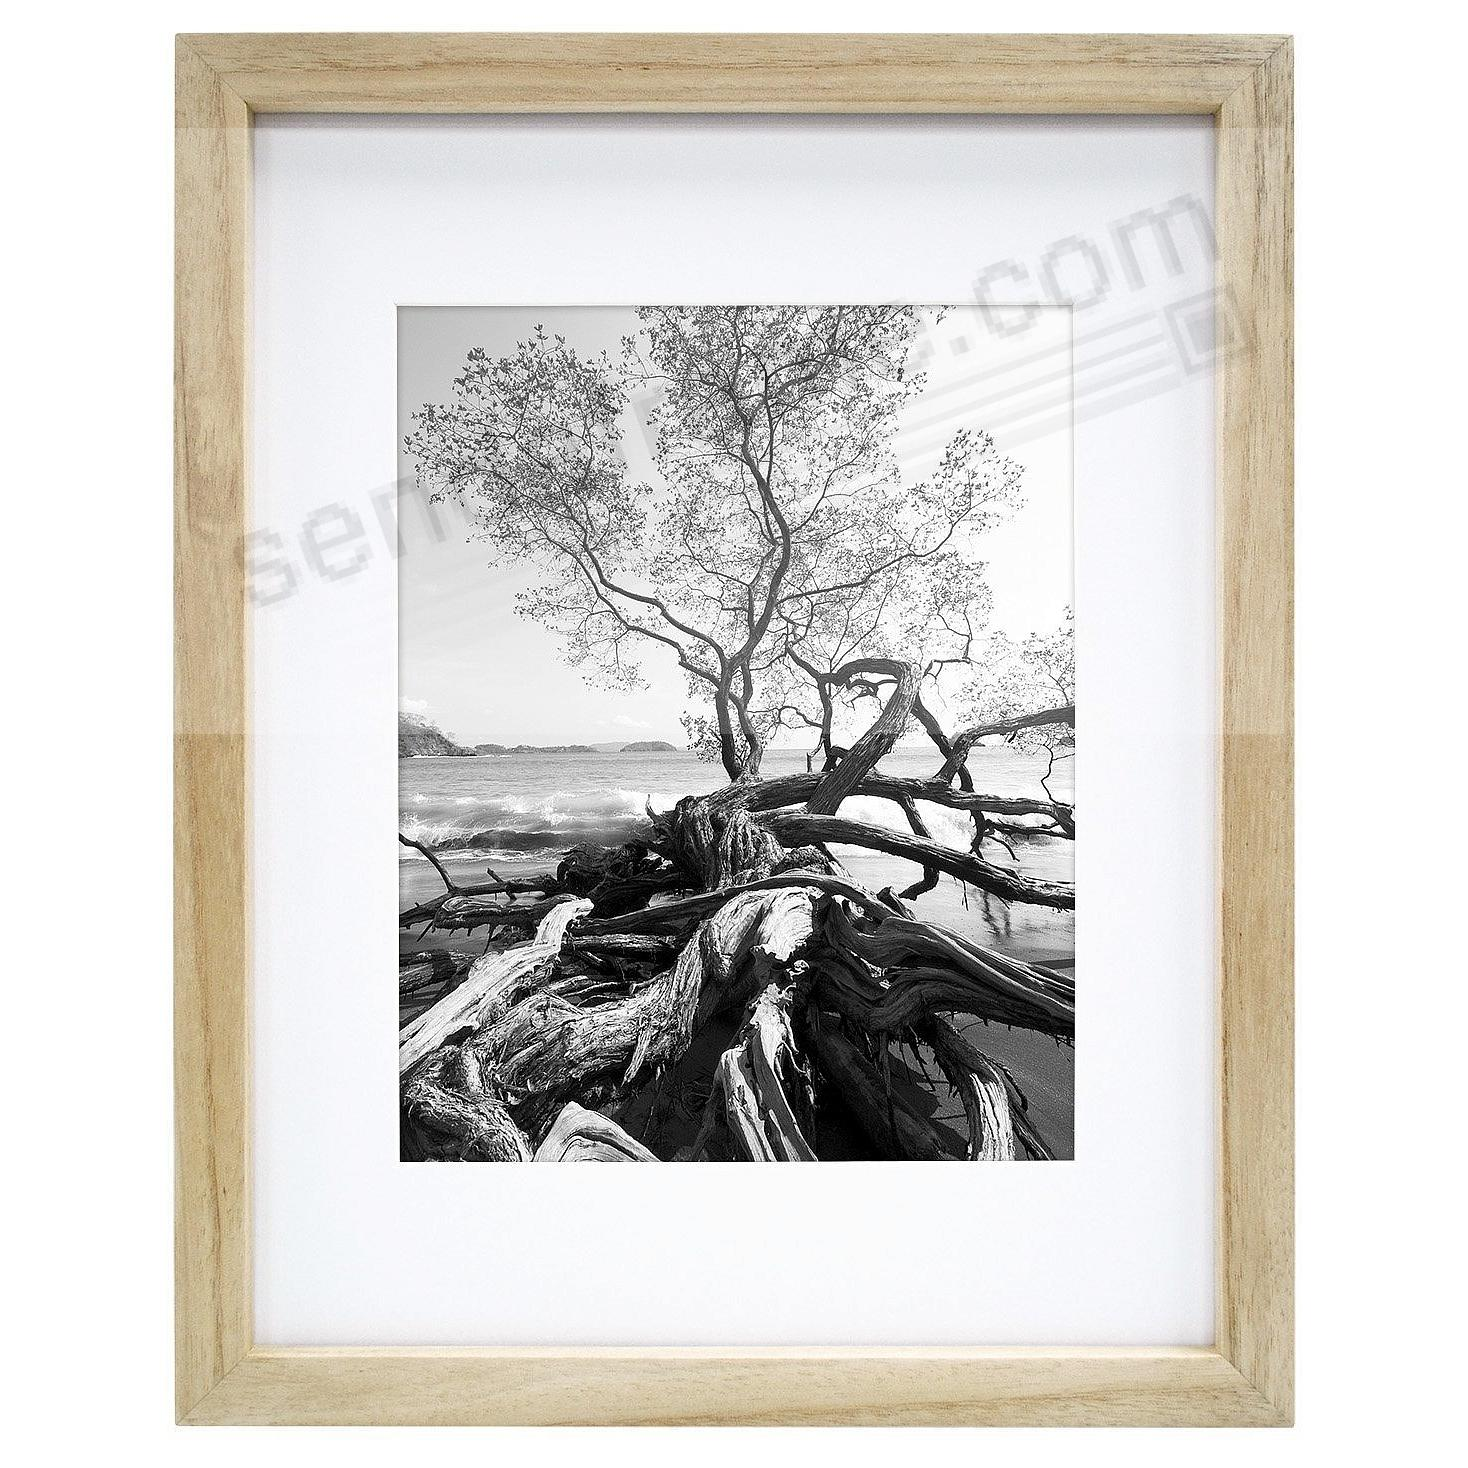 Art Shadow Box 8x105x7 Natural Wood Frame By Mcs Picture Frames